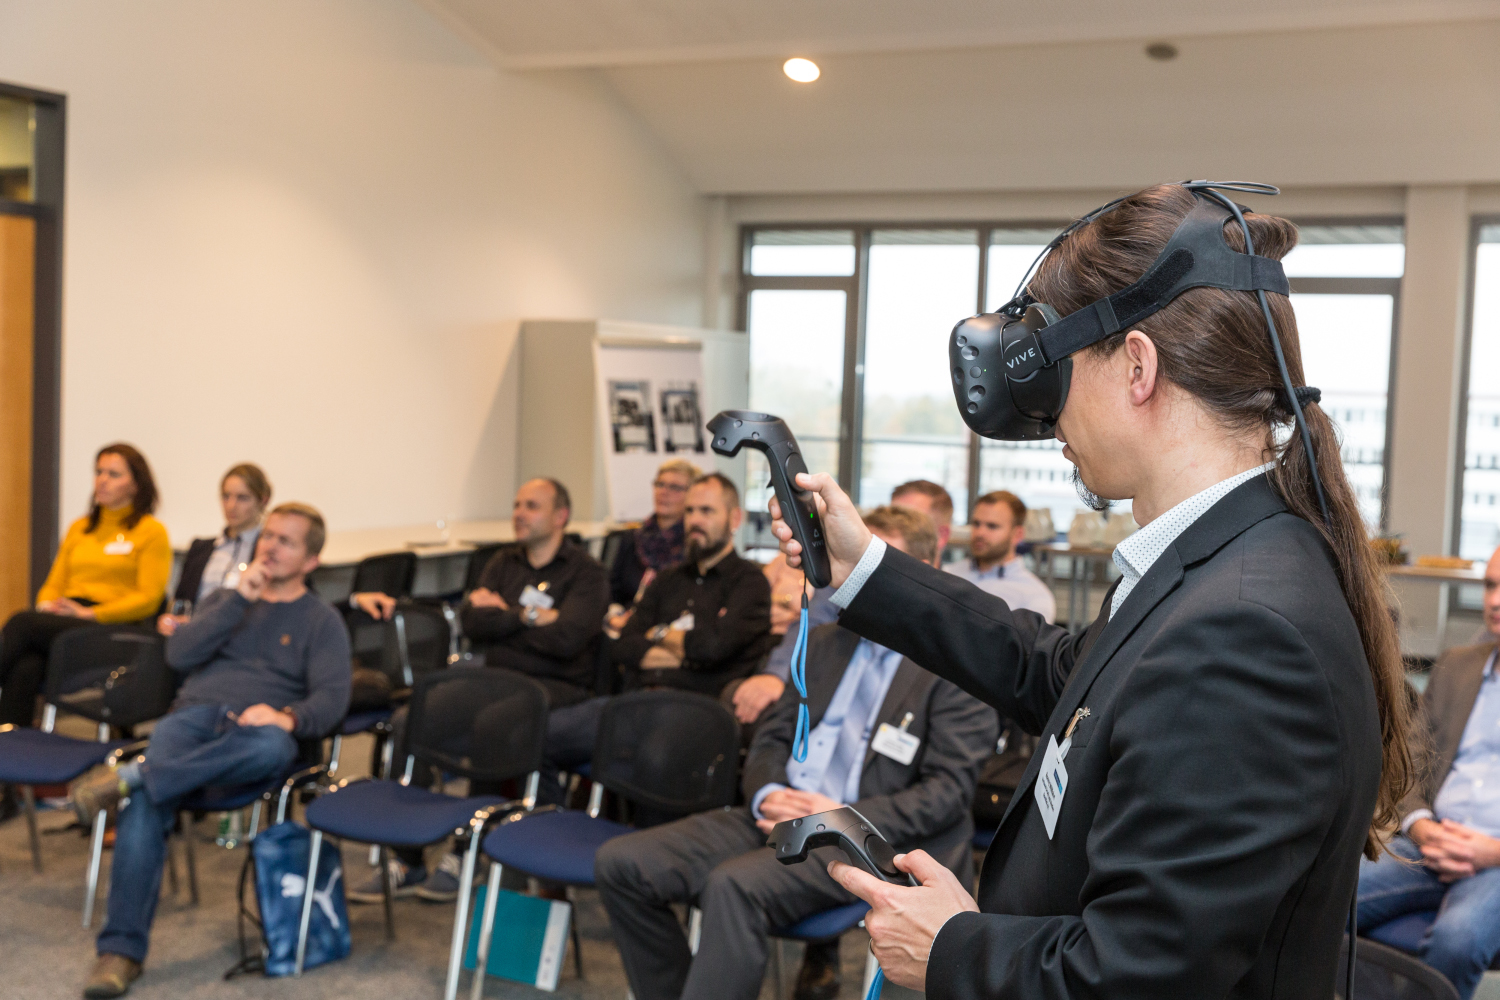 Ronny Willfahrt mit VR-Datenbrille im Workshop Social Virtual Learning am 24. Oktober 2019 in Schwerin